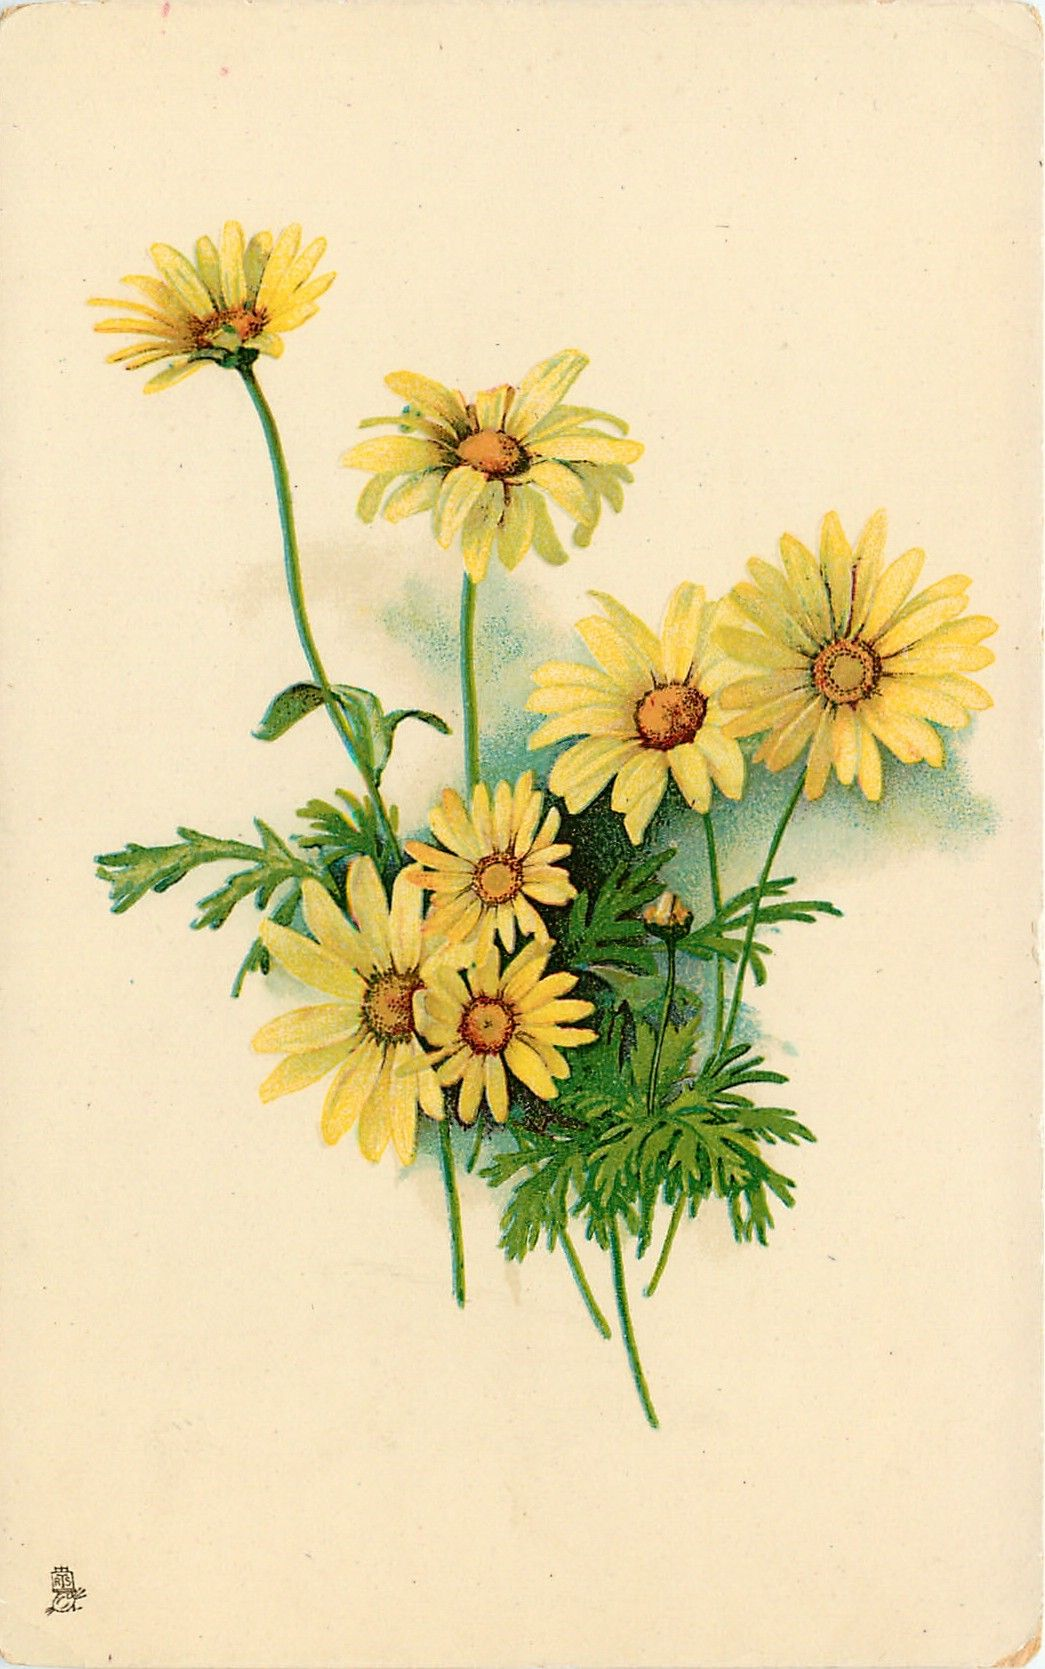 Yellow And Brown Daisy / In the west, the daisy is a symbol of simplicity, chastity and transformation.